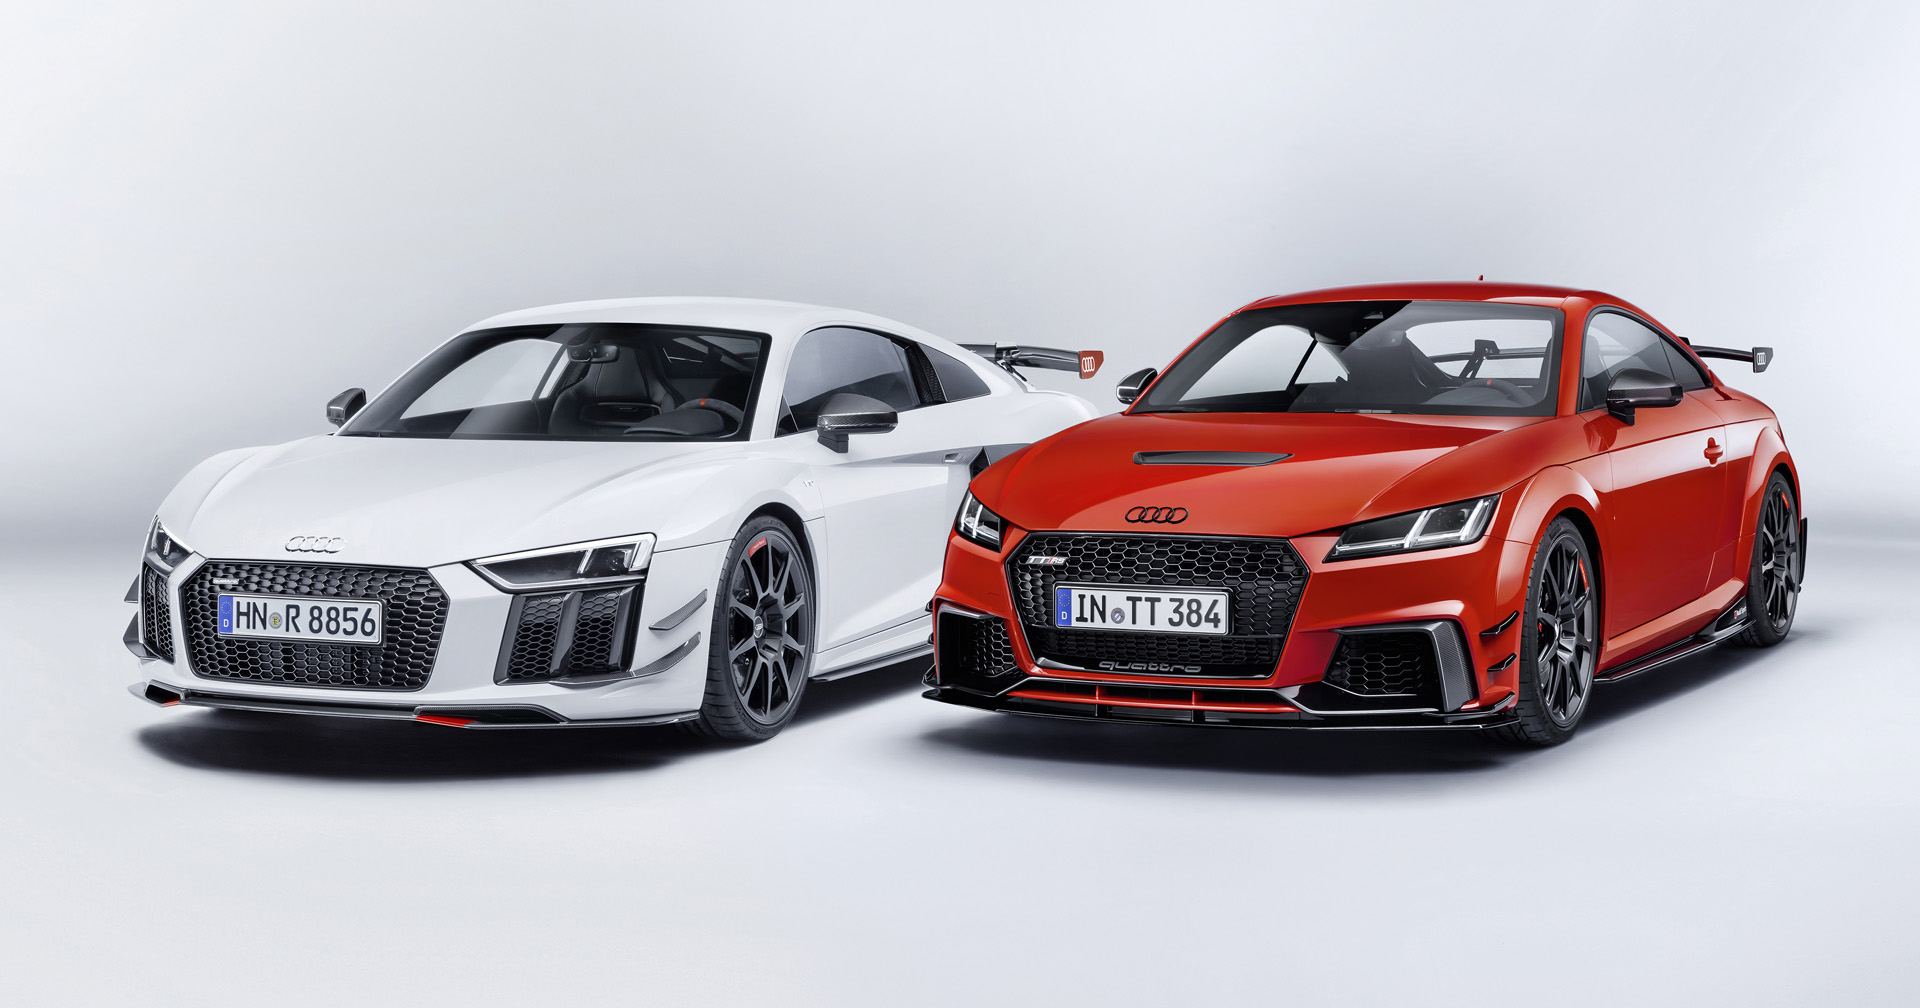 Audi R8 Or Tt Look Like Proper Race Cars